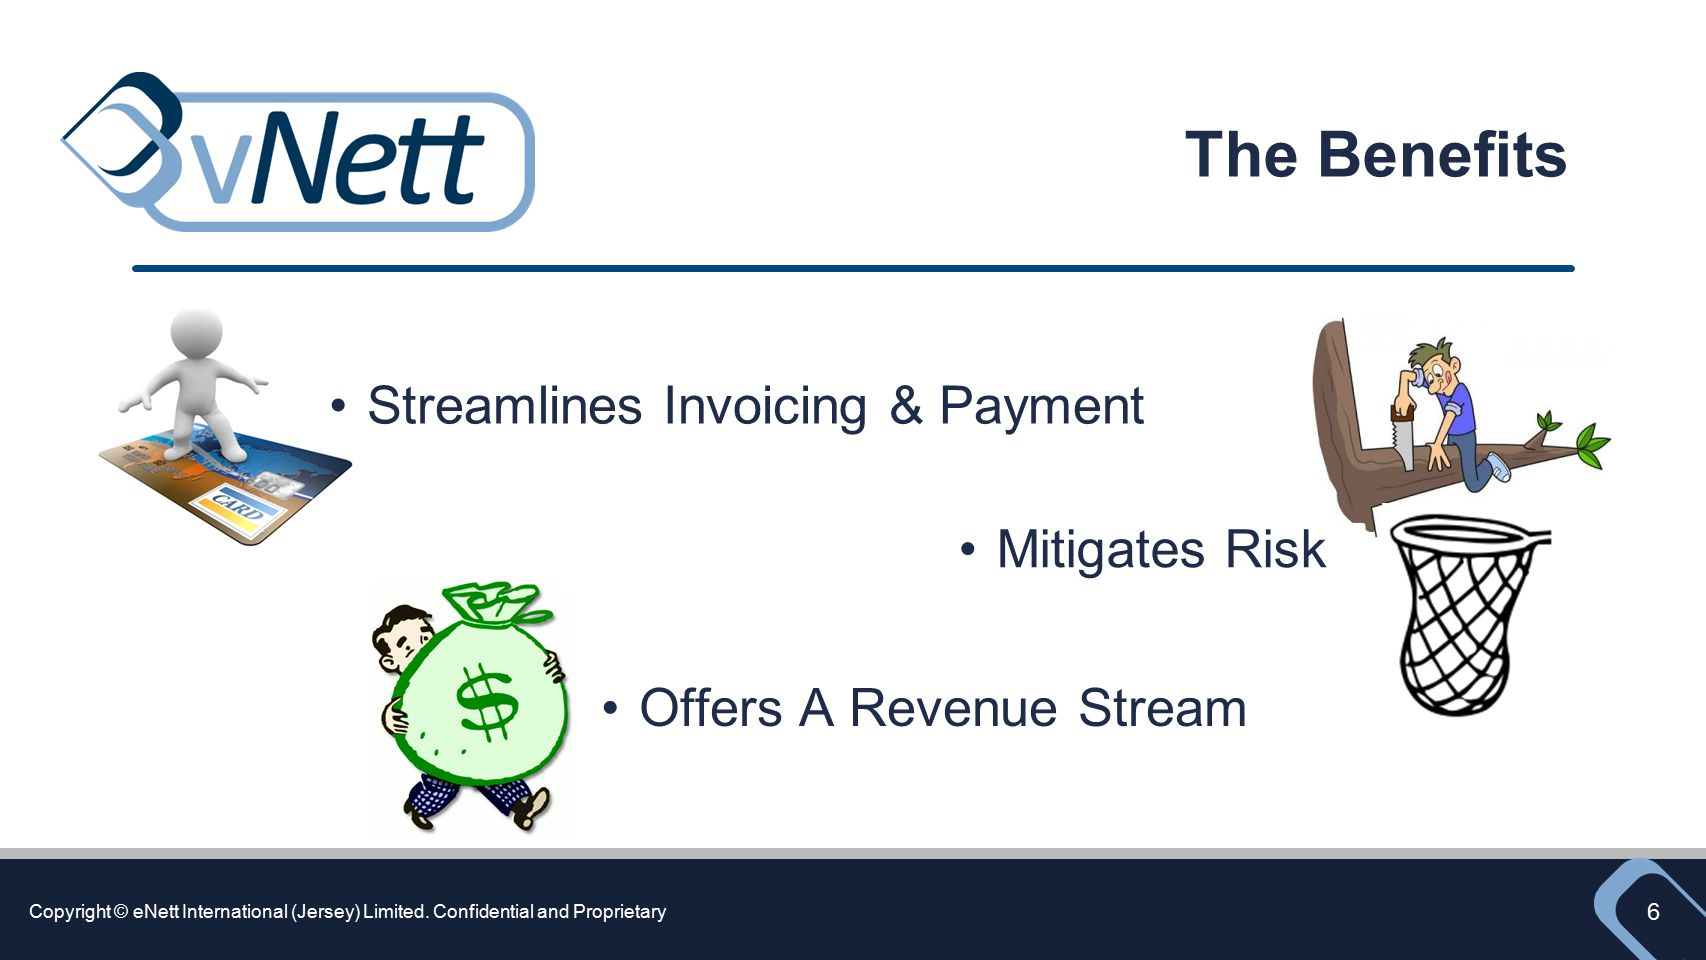 Copyright © eNett International (Jersey) Limited. Confidential and Proprietary 6 The Benefits Streamlines Invoicing & Payment Mitigates Risk Offers A